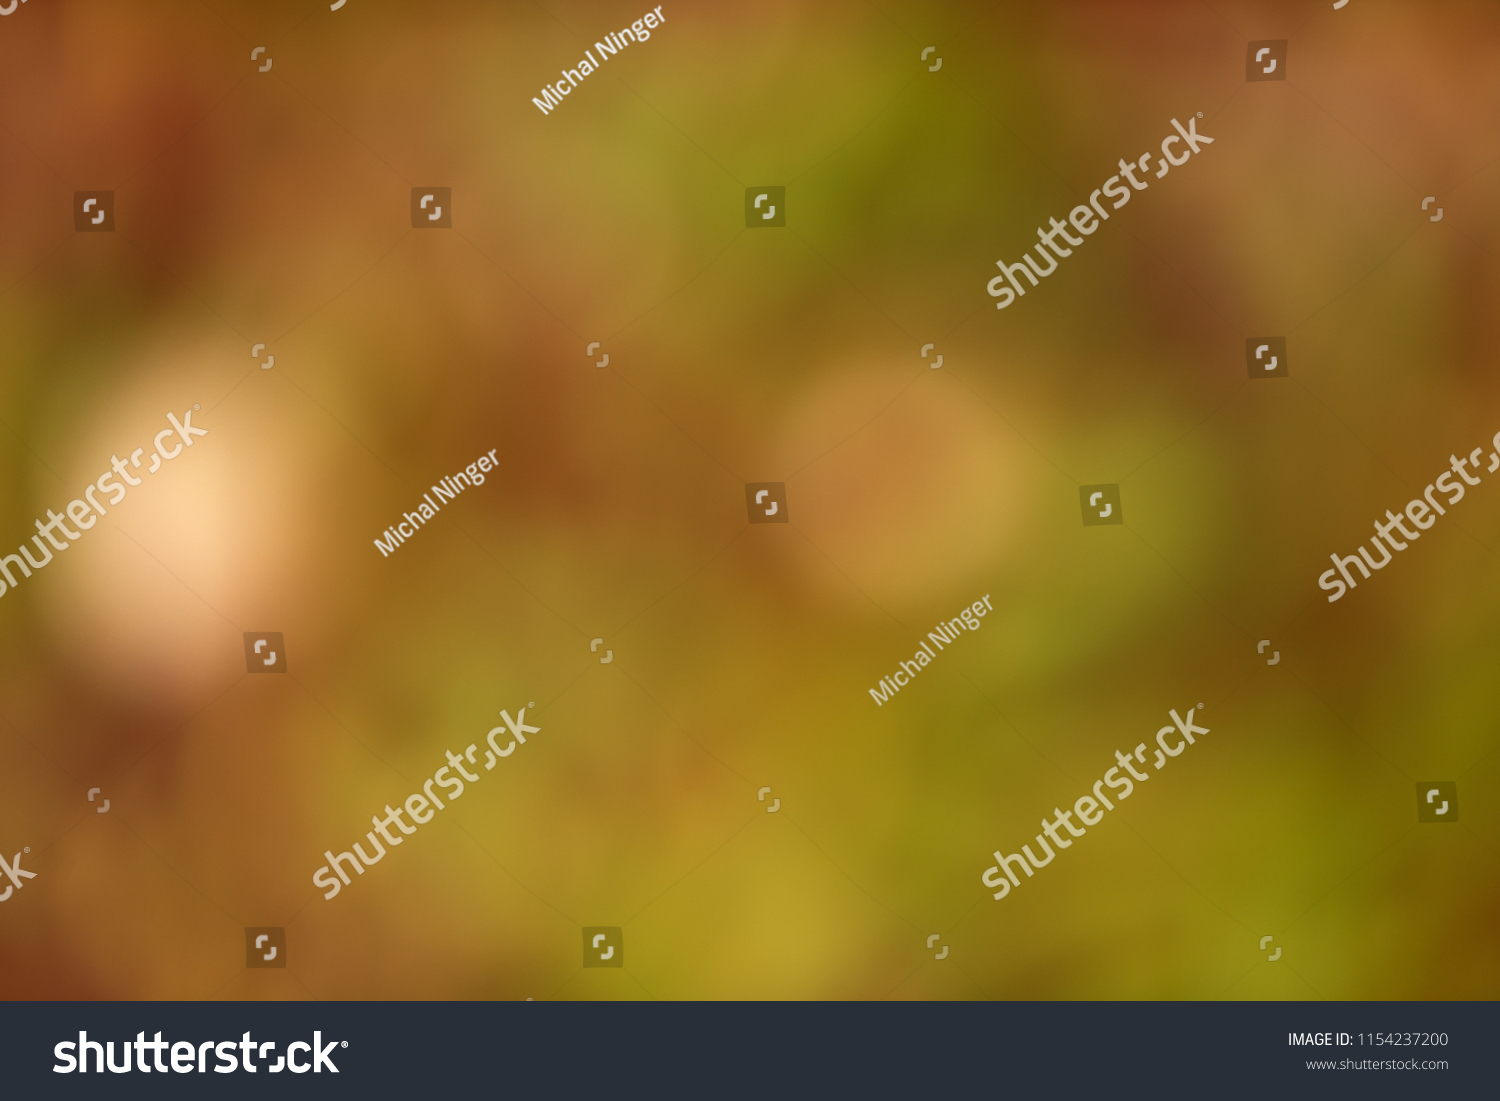 natural background, green and brown